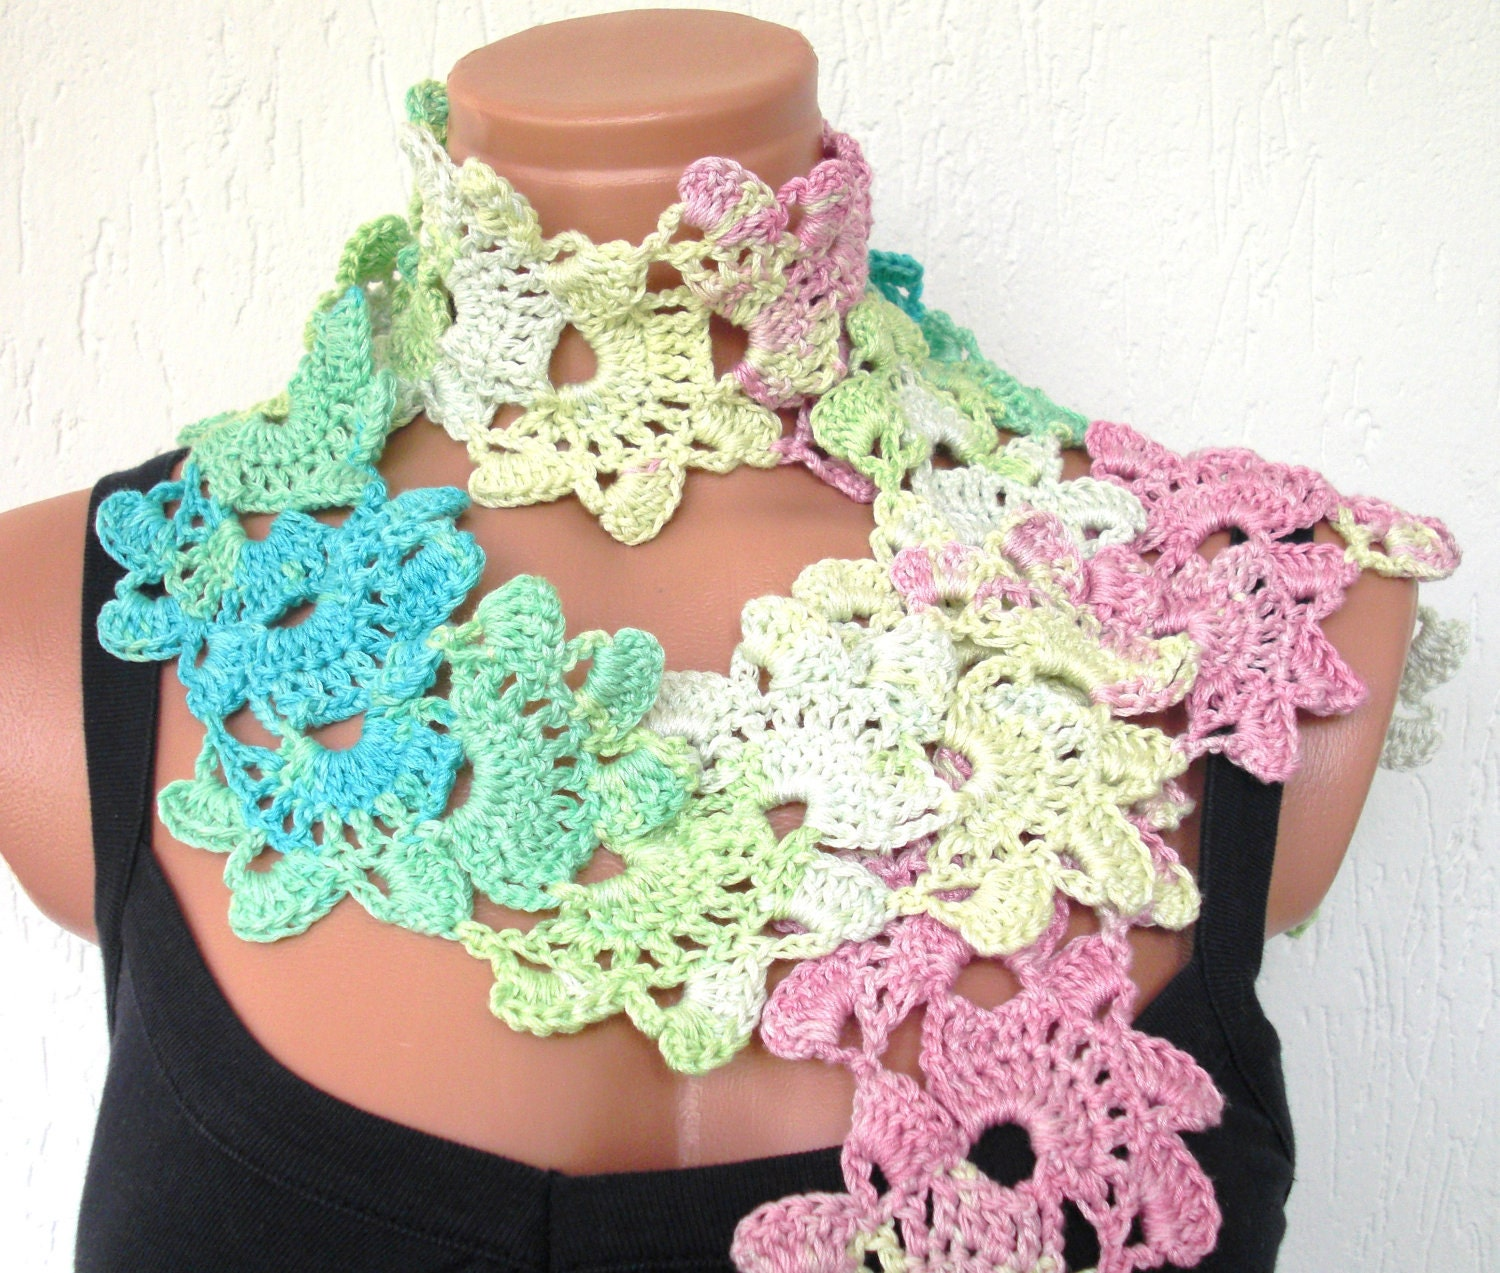 Crochet  Lace Scarf  in Cream pink blue green -Seashell Scarf - Inspired  Turkish  Lace- Cotton-  crochet Lariat- Summer Scarf